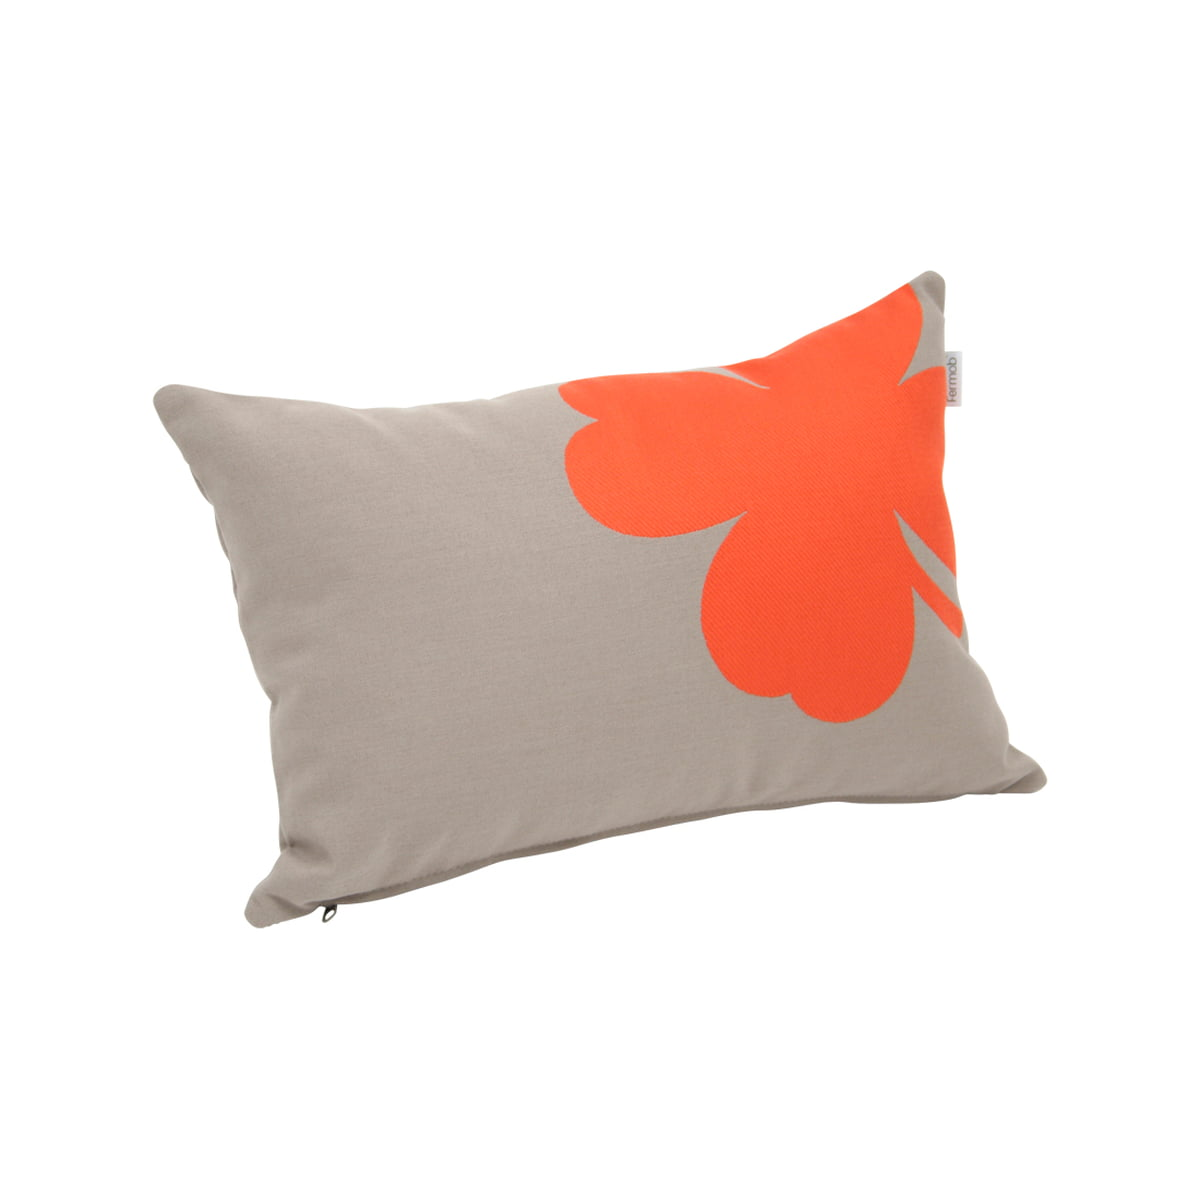 Trèfle Outdoor Cushion 44 X 30 Cm By Fermob In Stone Grey